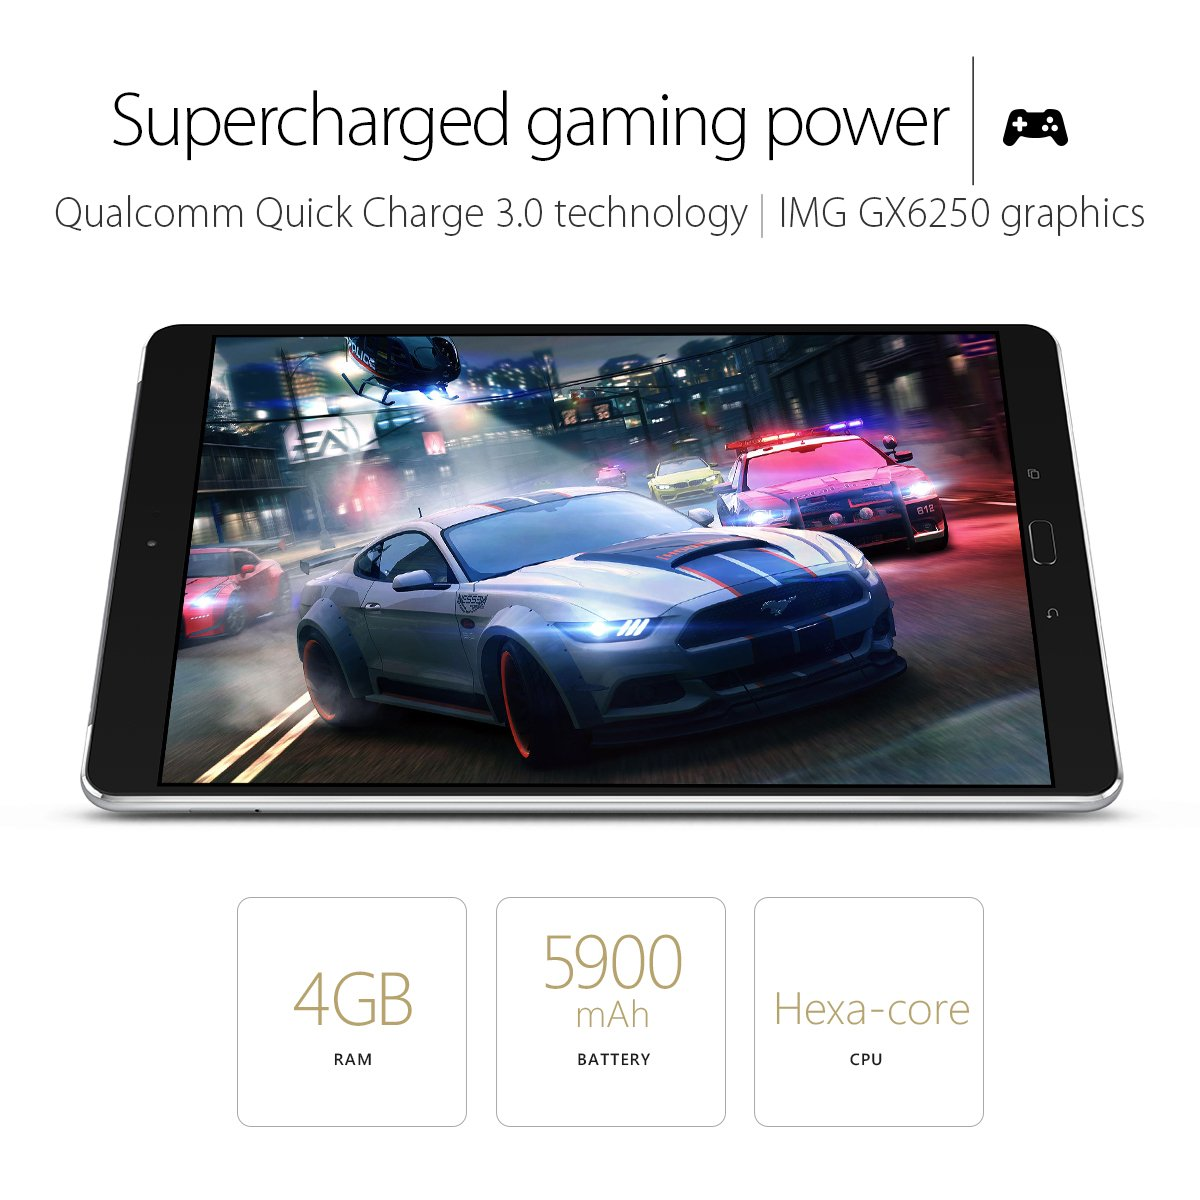 ASUS ZenPad 3S 10 9.7'' (2048x1536), 4GB RAM, 64GB eMMC, 5MP Front / 8MP Rear Camera, Android 6.0, Tablet, Titanium Gray (Z500M-C1-GR) by Asus